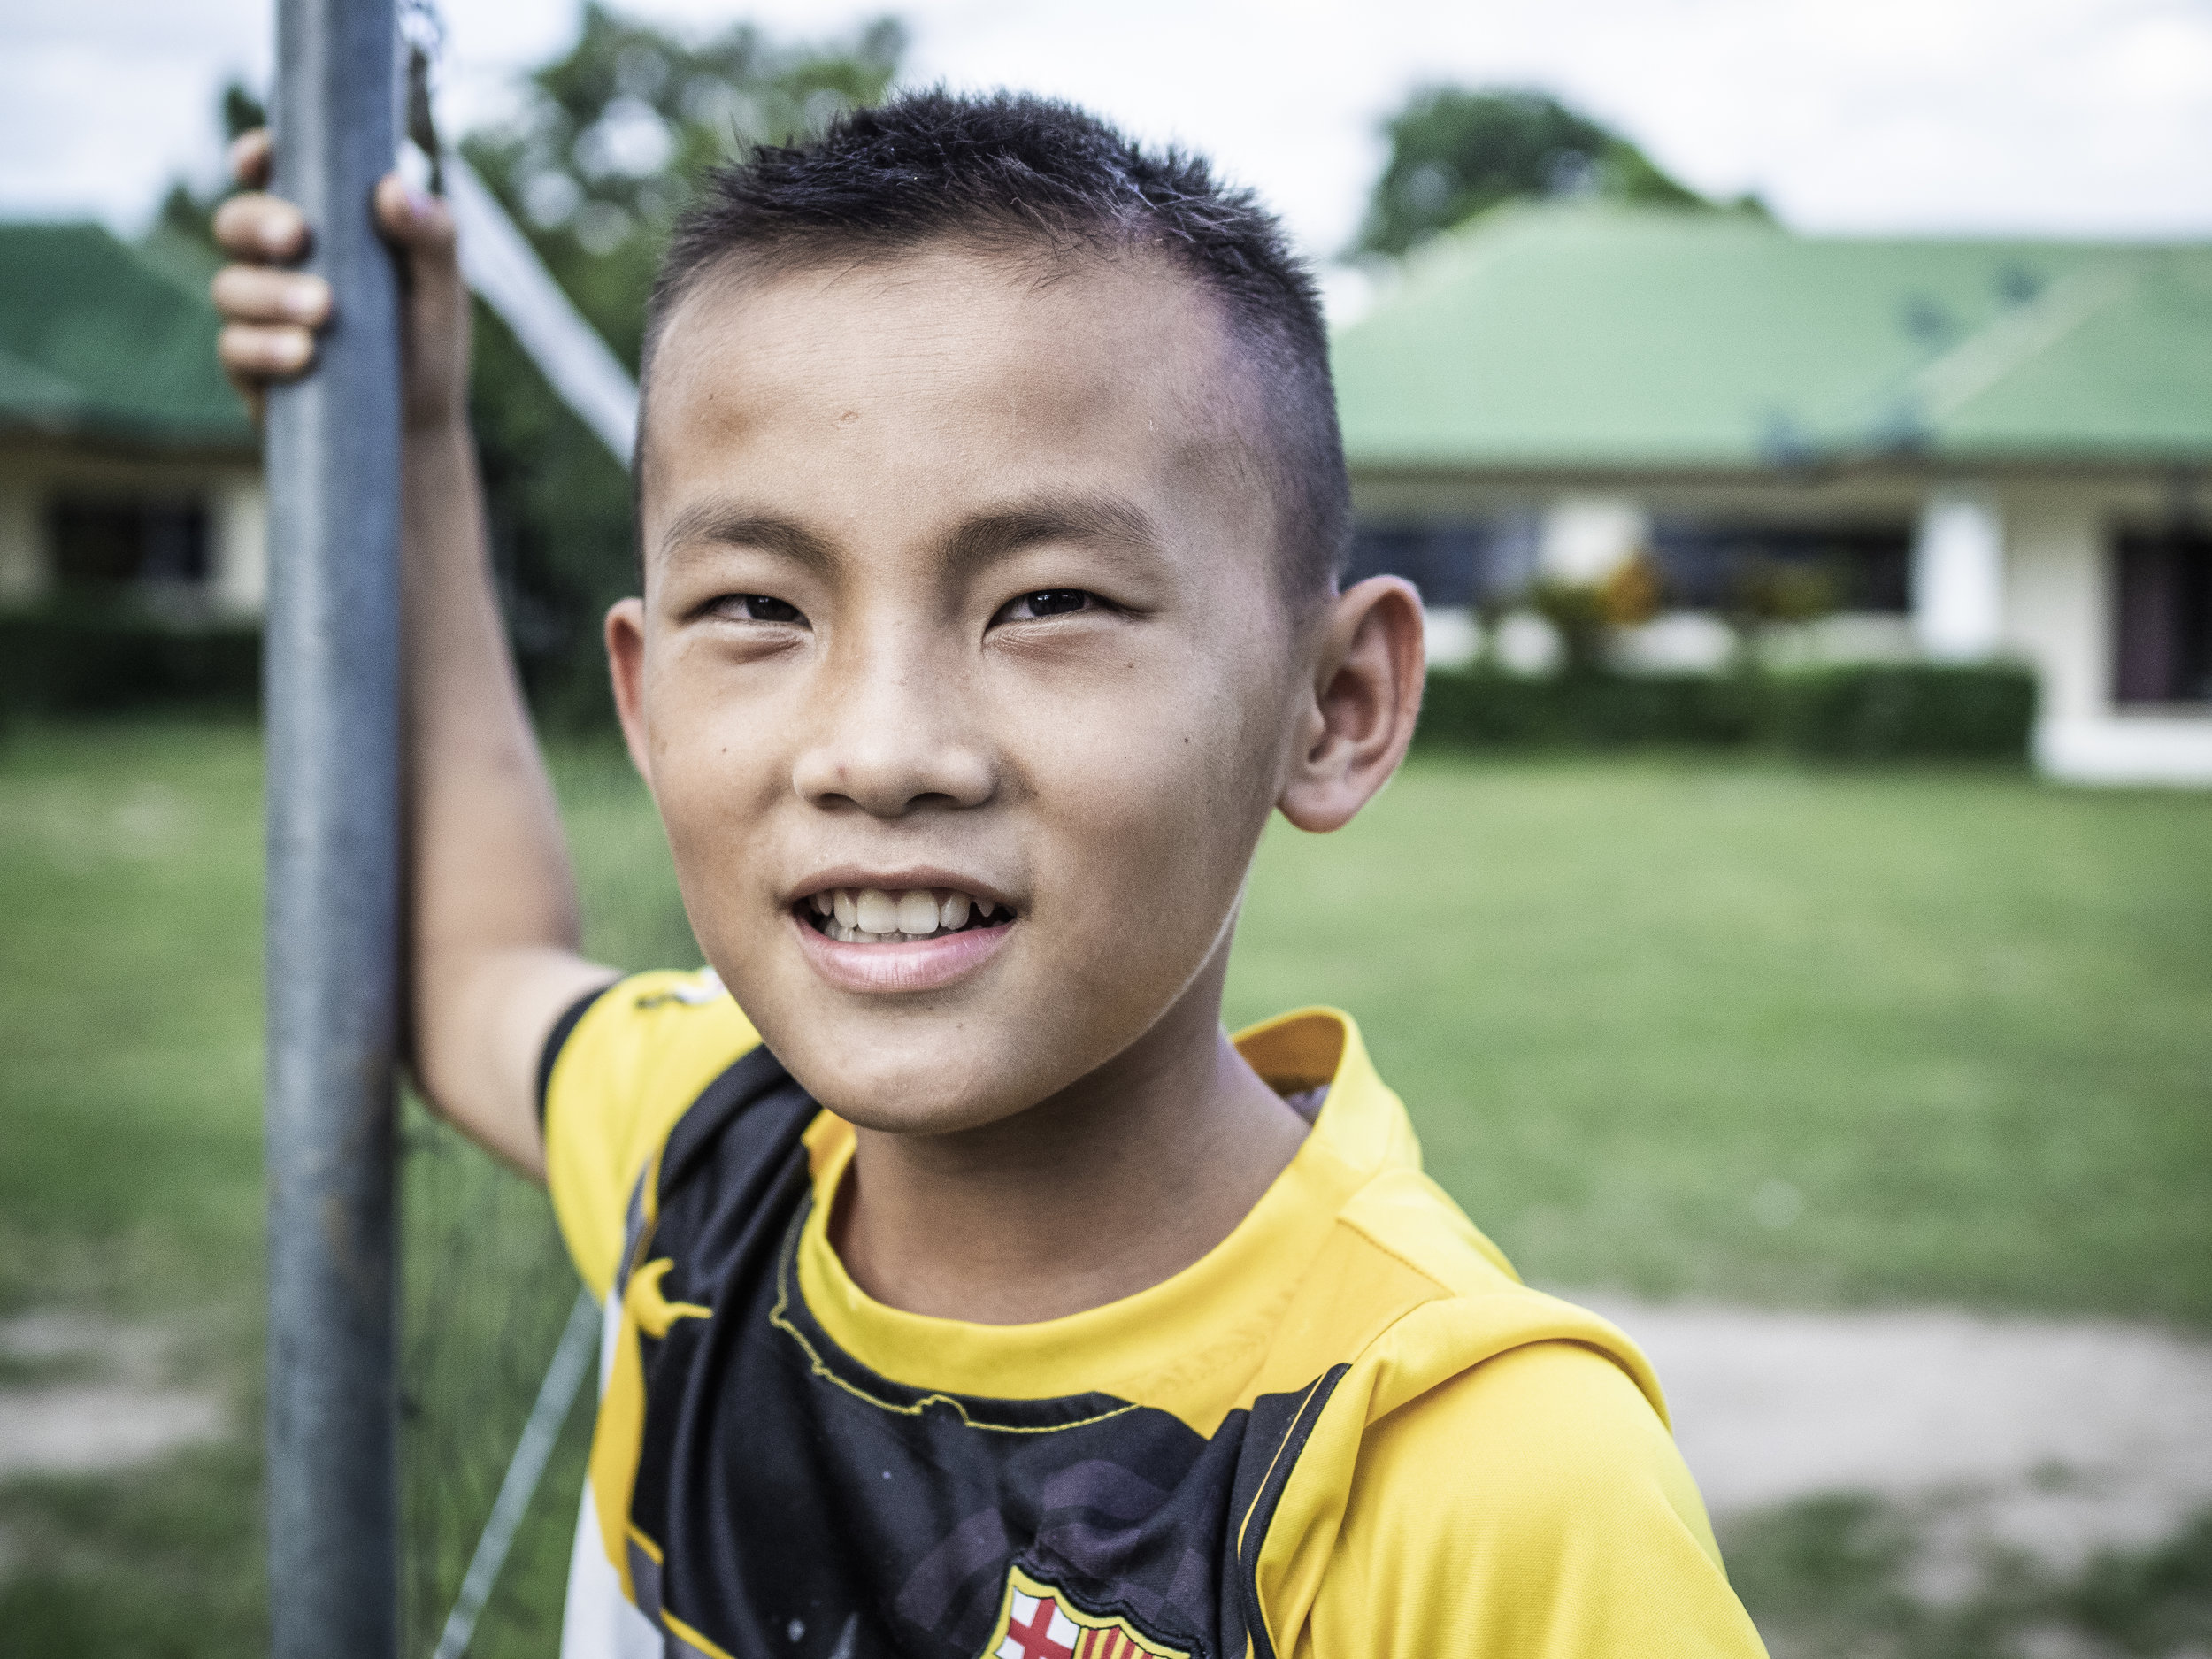 Kids living at Asia's Hope homes receive all the benefits of a safe, loving family.